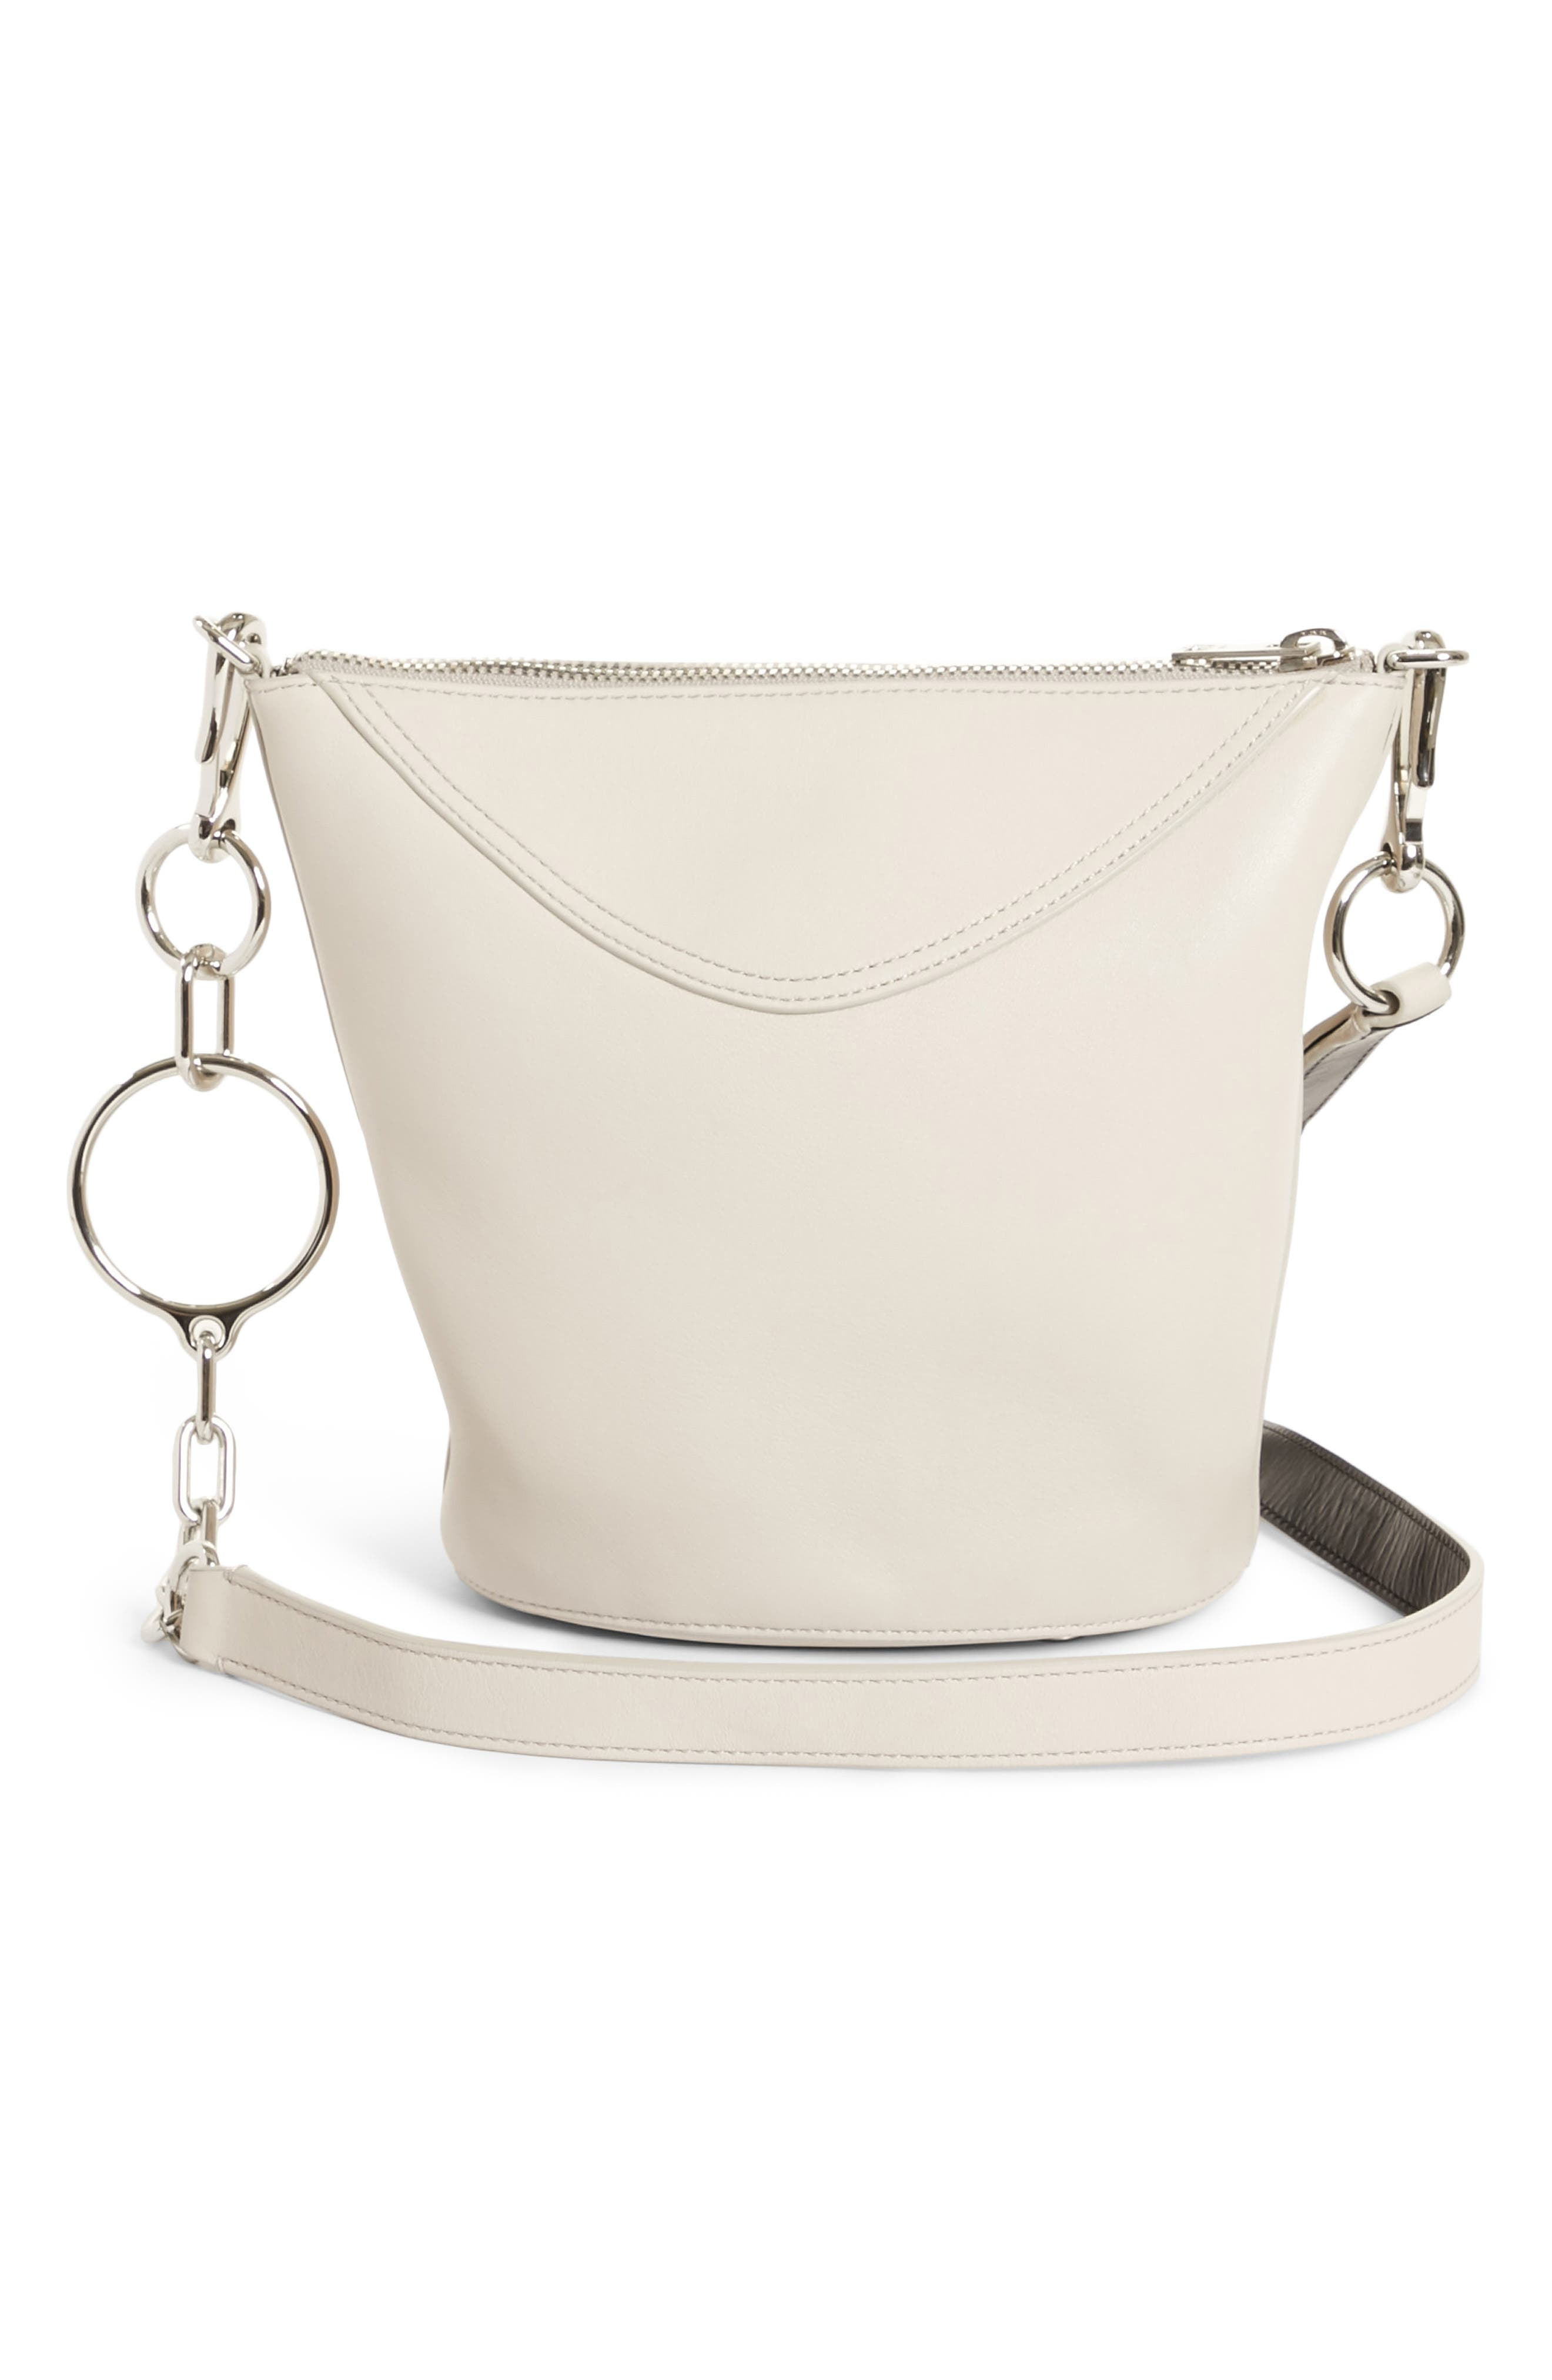 Ace Leather Bucket Bag,                         Main,                         color, 021